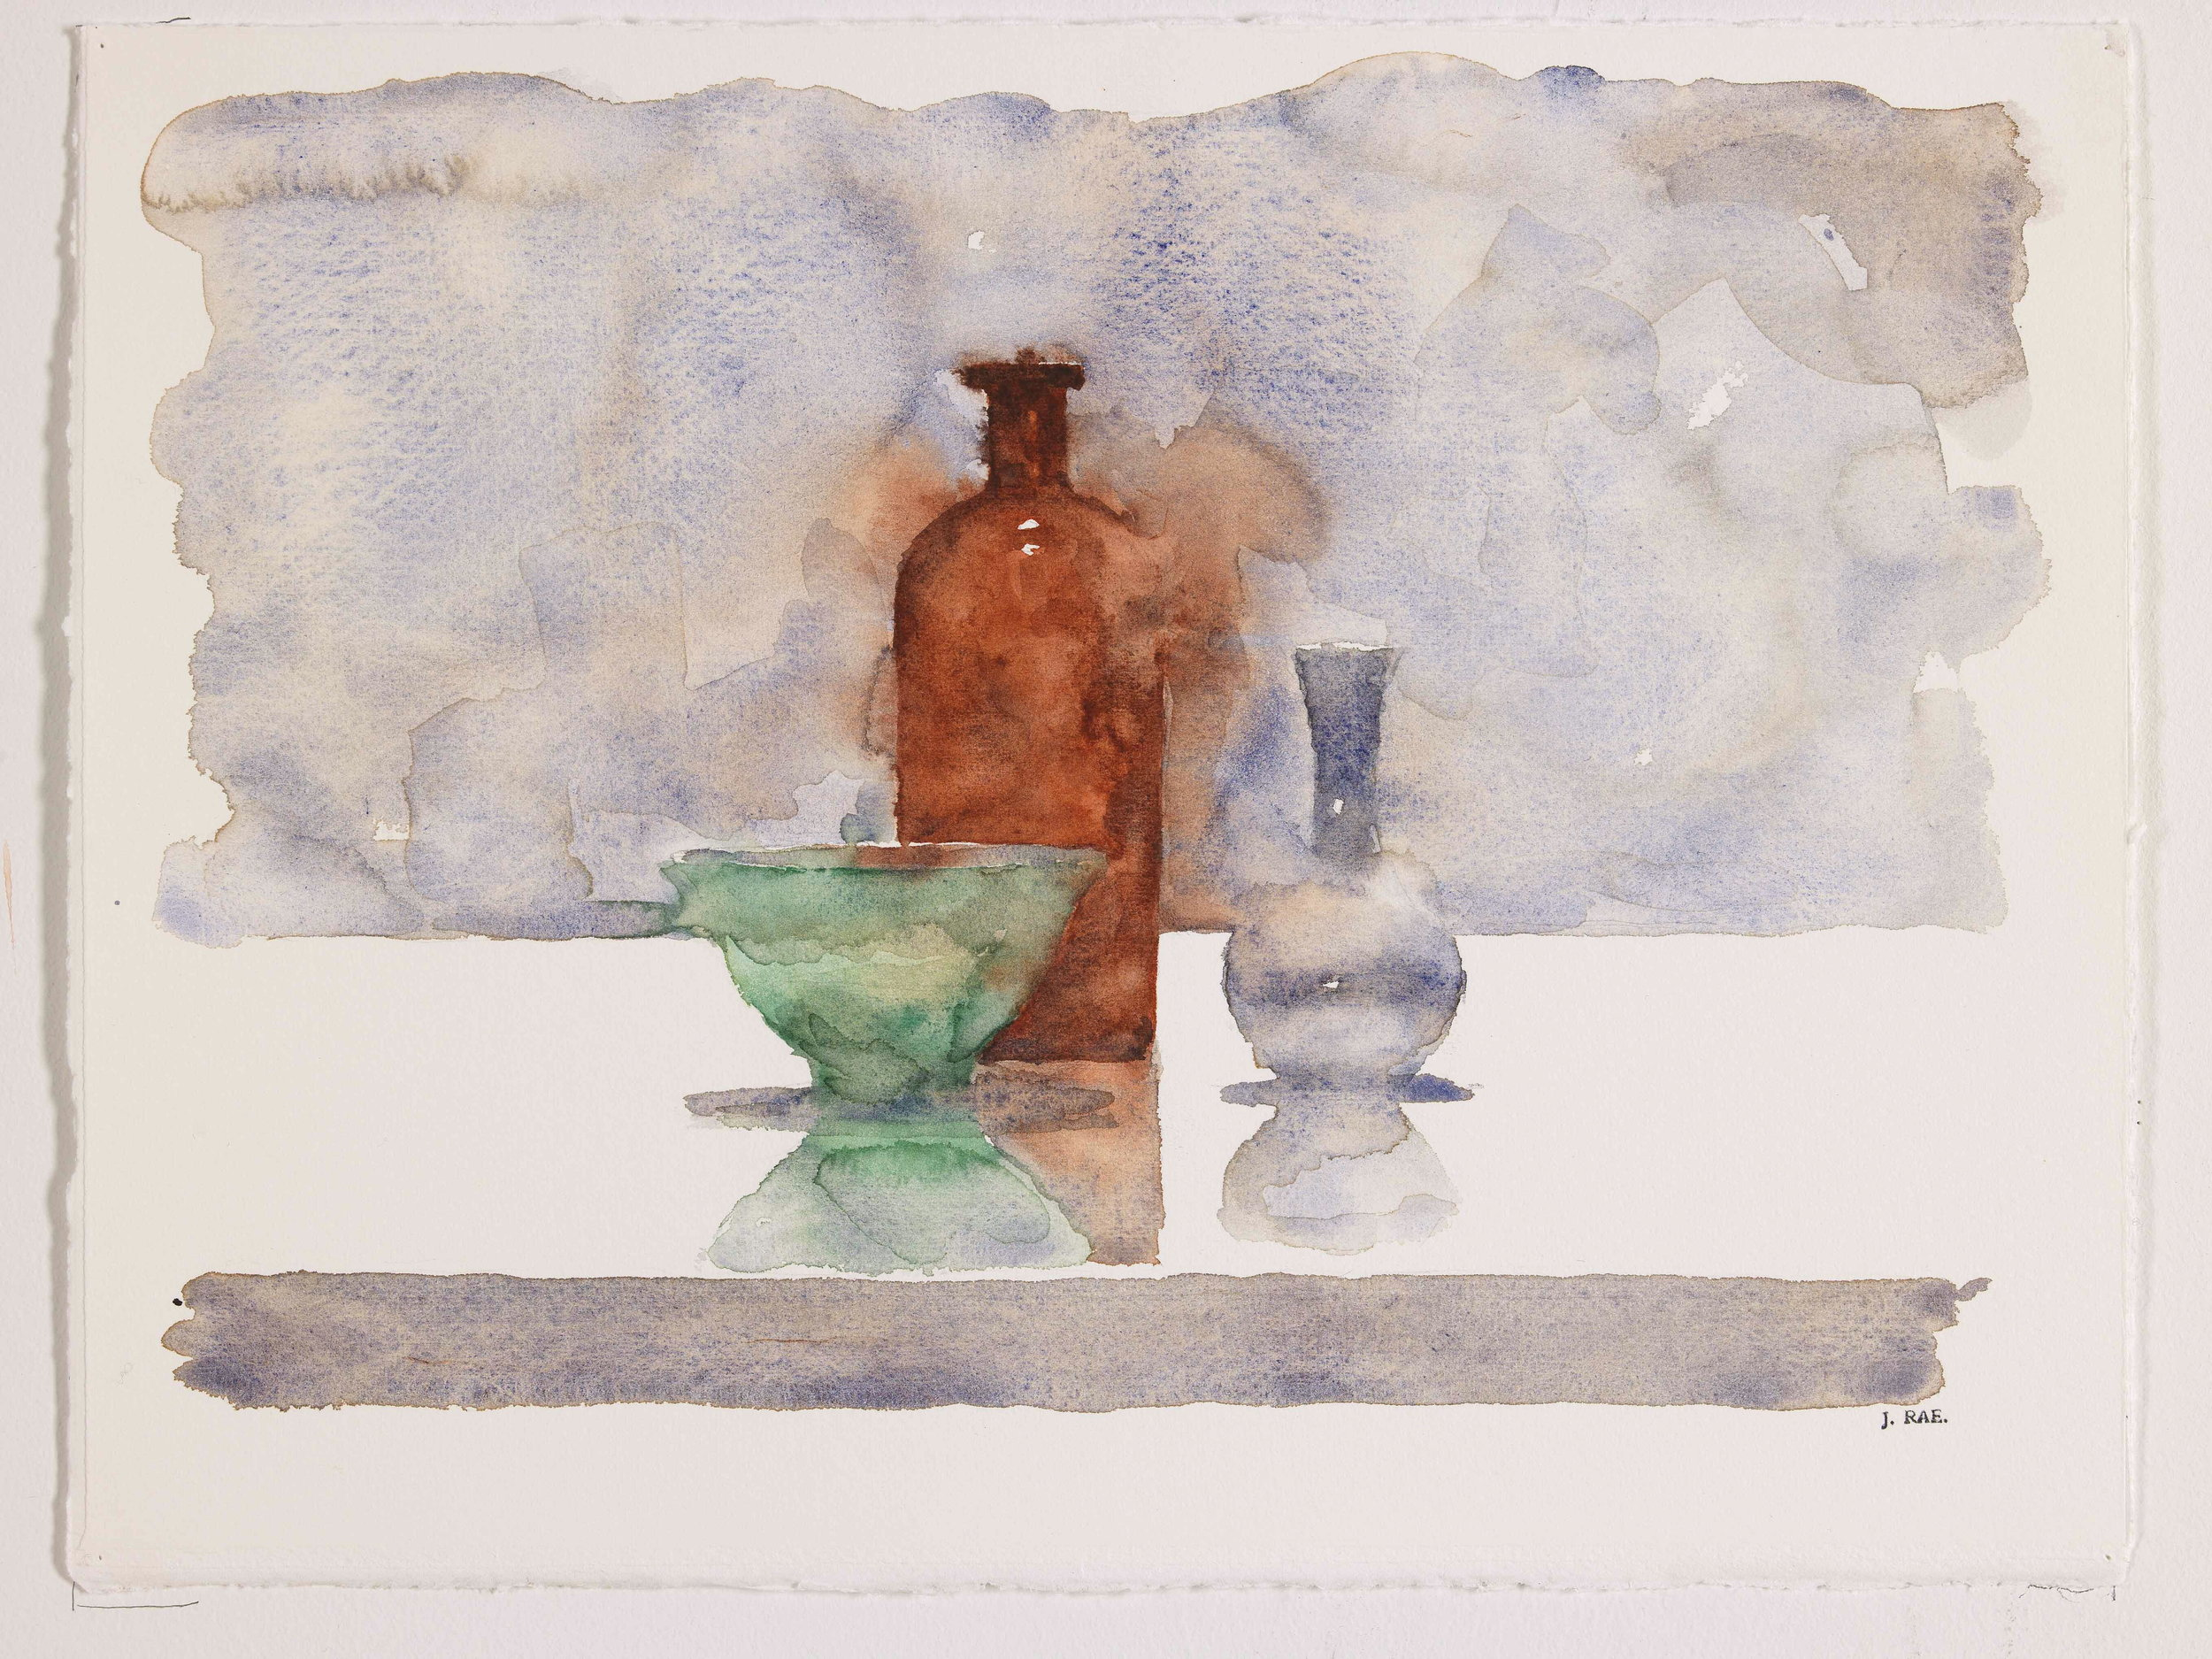 WCSL121, 2010, water colour on paper, 38 x 29cm.